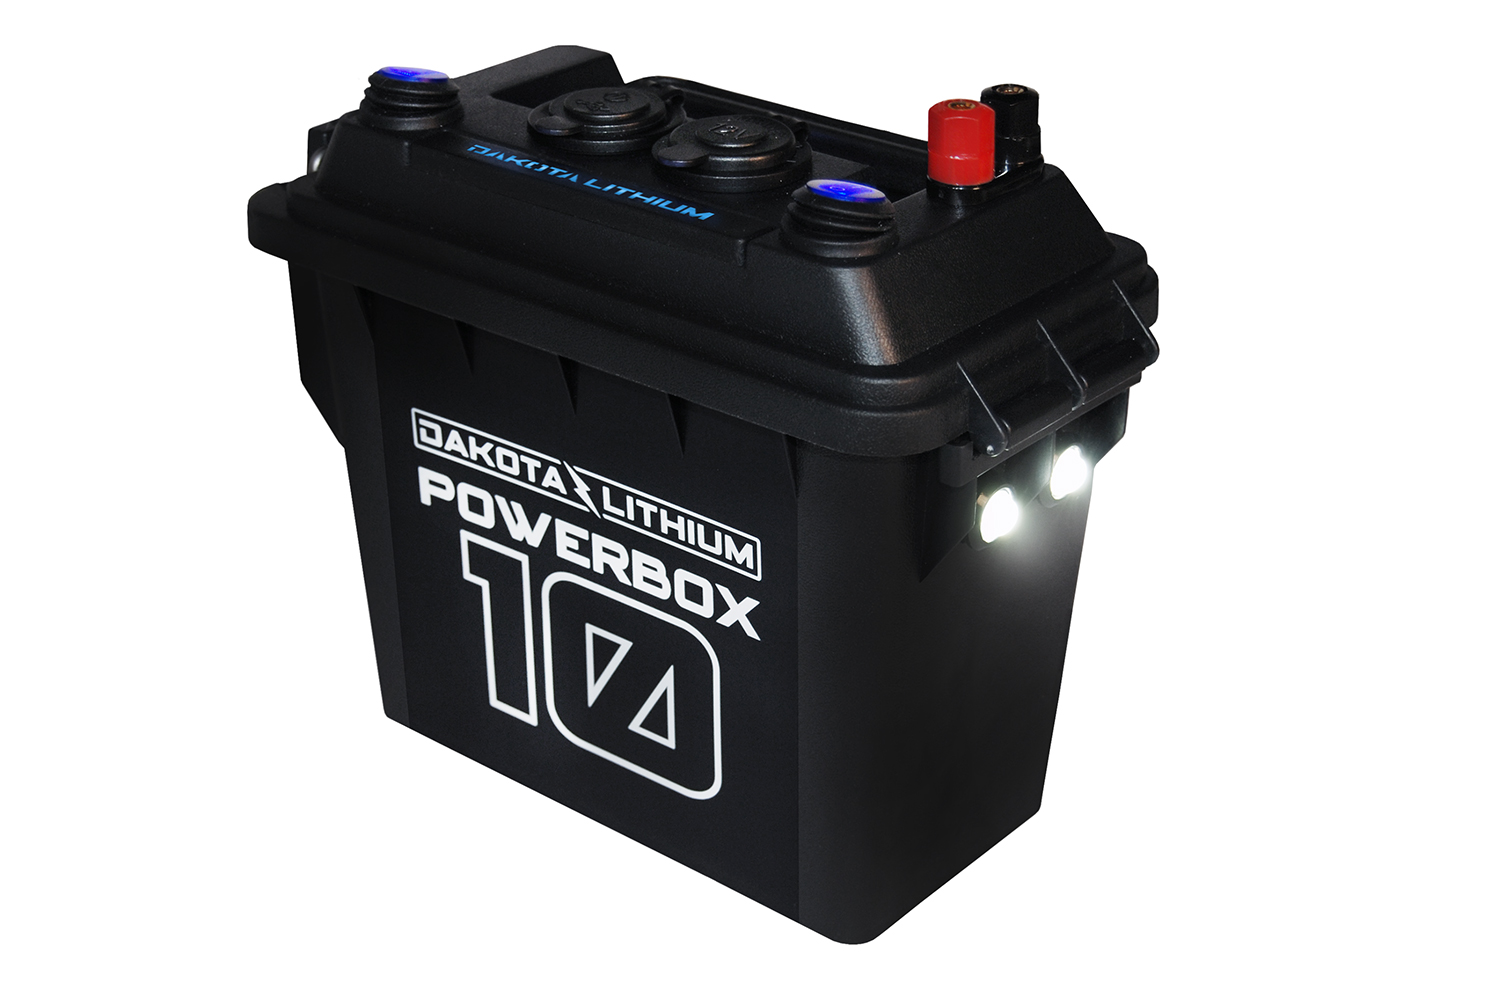 Portable power is much more convenient with the Dakota Lithium Powerbox 10